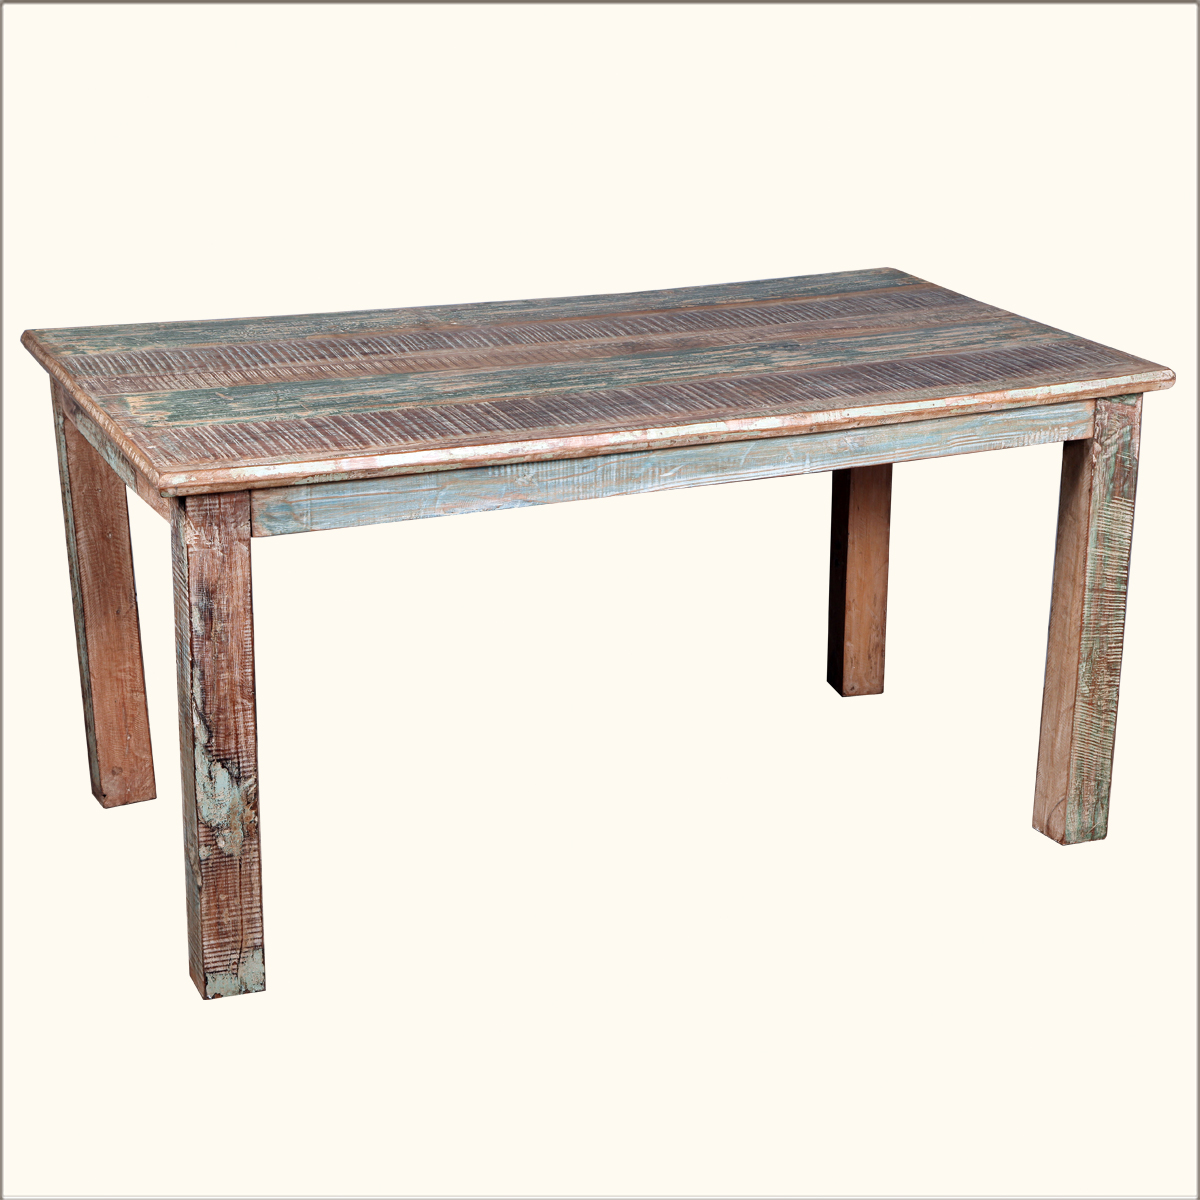 Rustic Reclaimed Wood Distressed Kitchen Dining Table Furniture Ebay